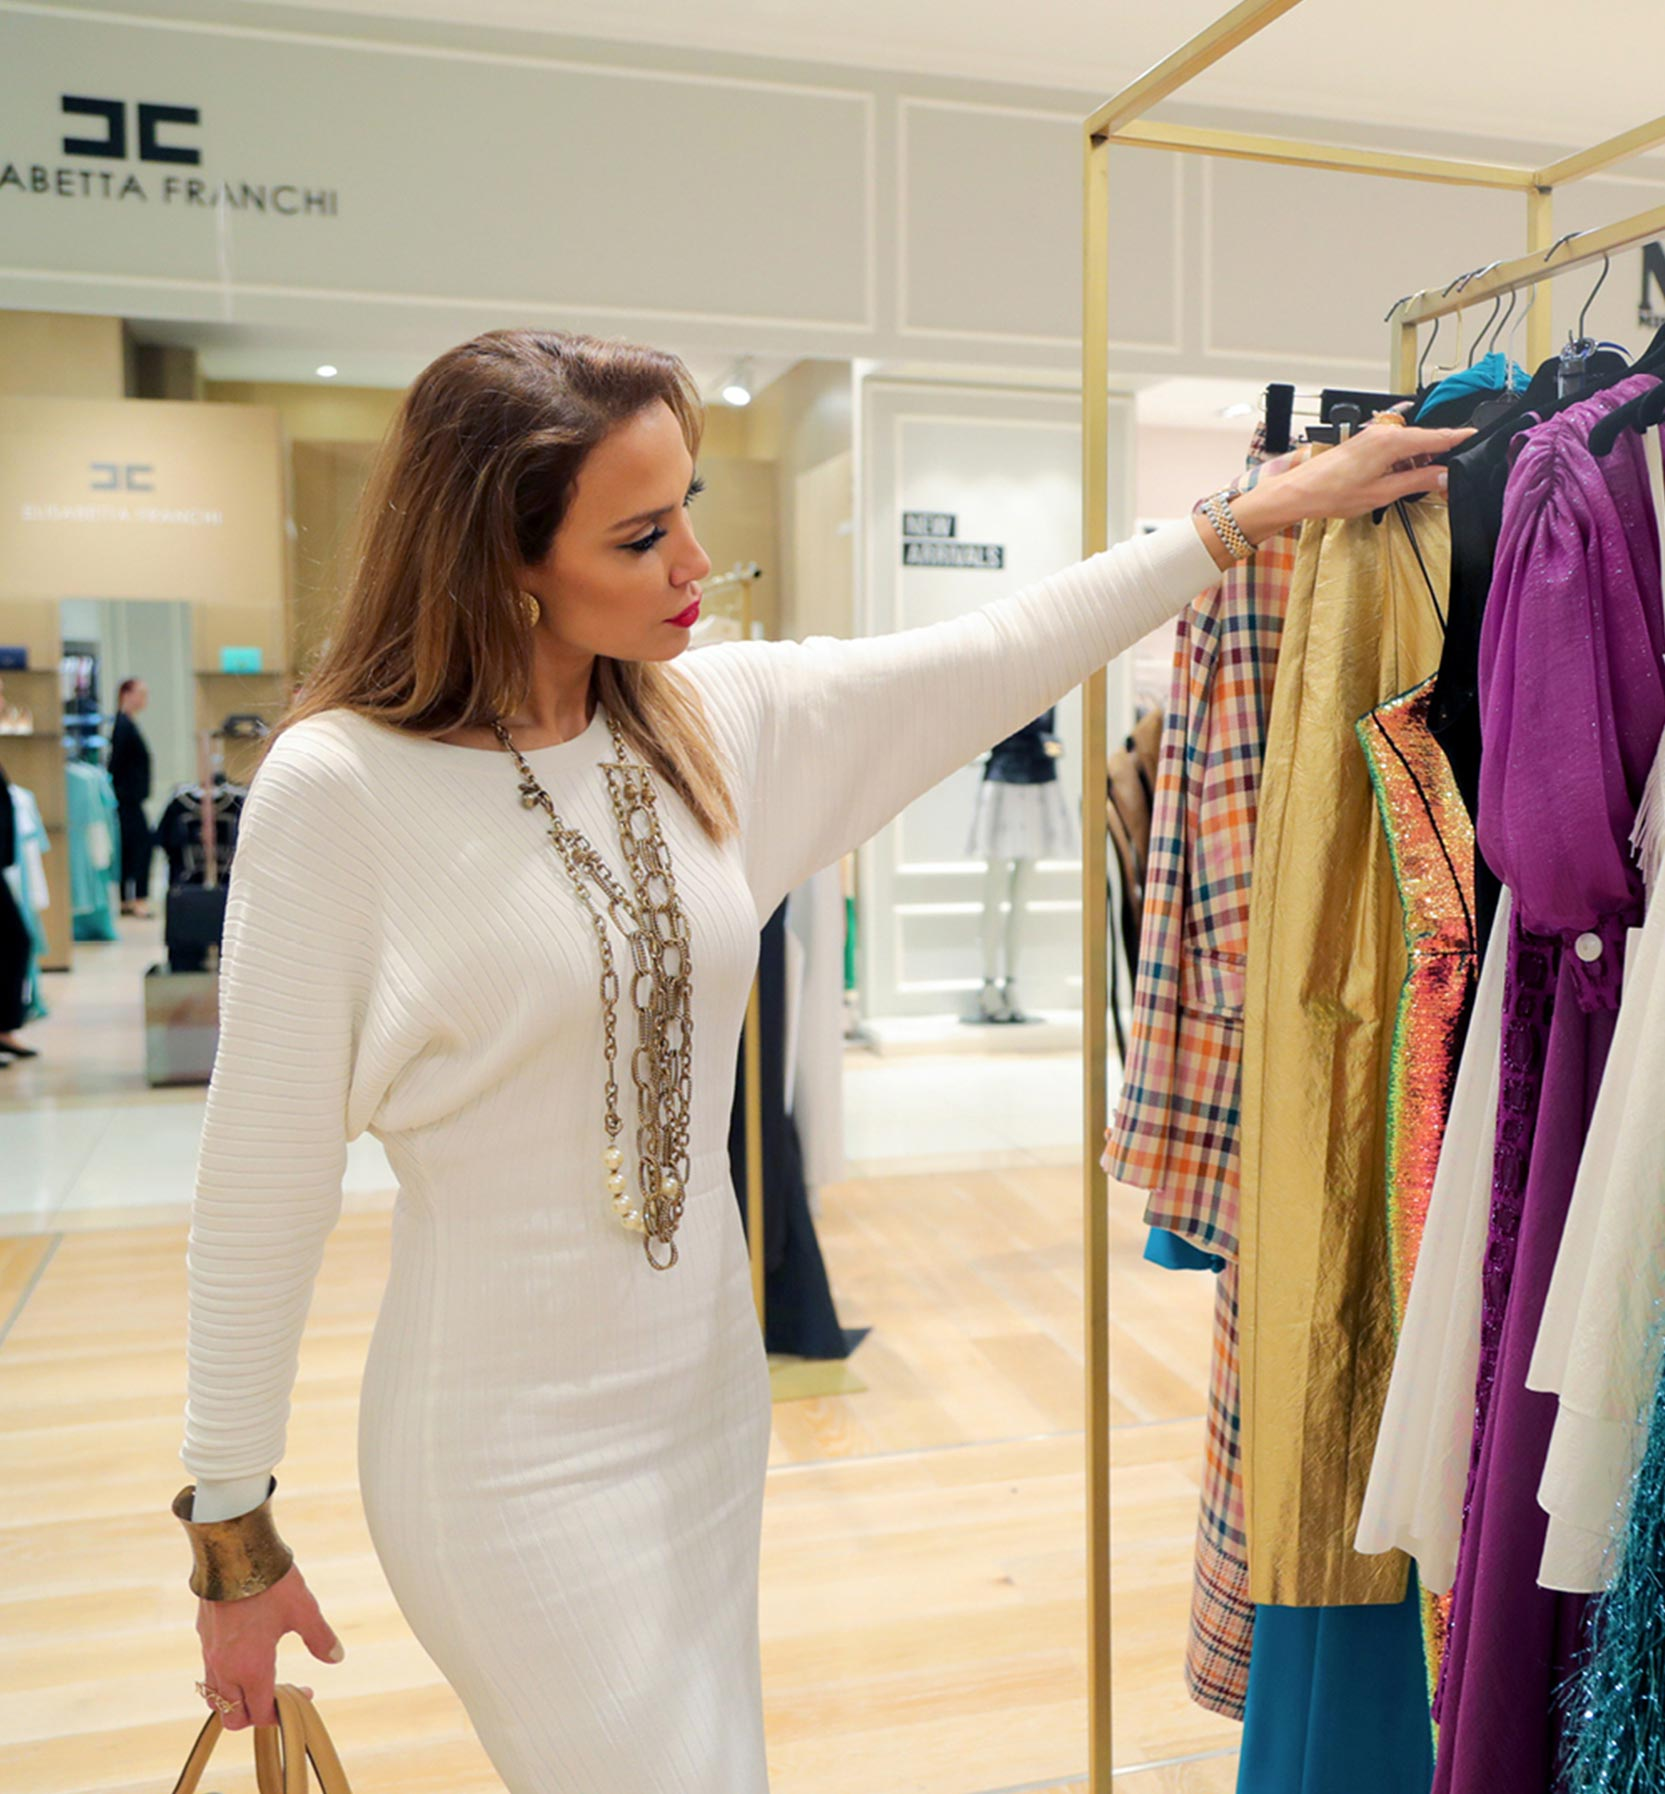 personal shopper training dubai mall